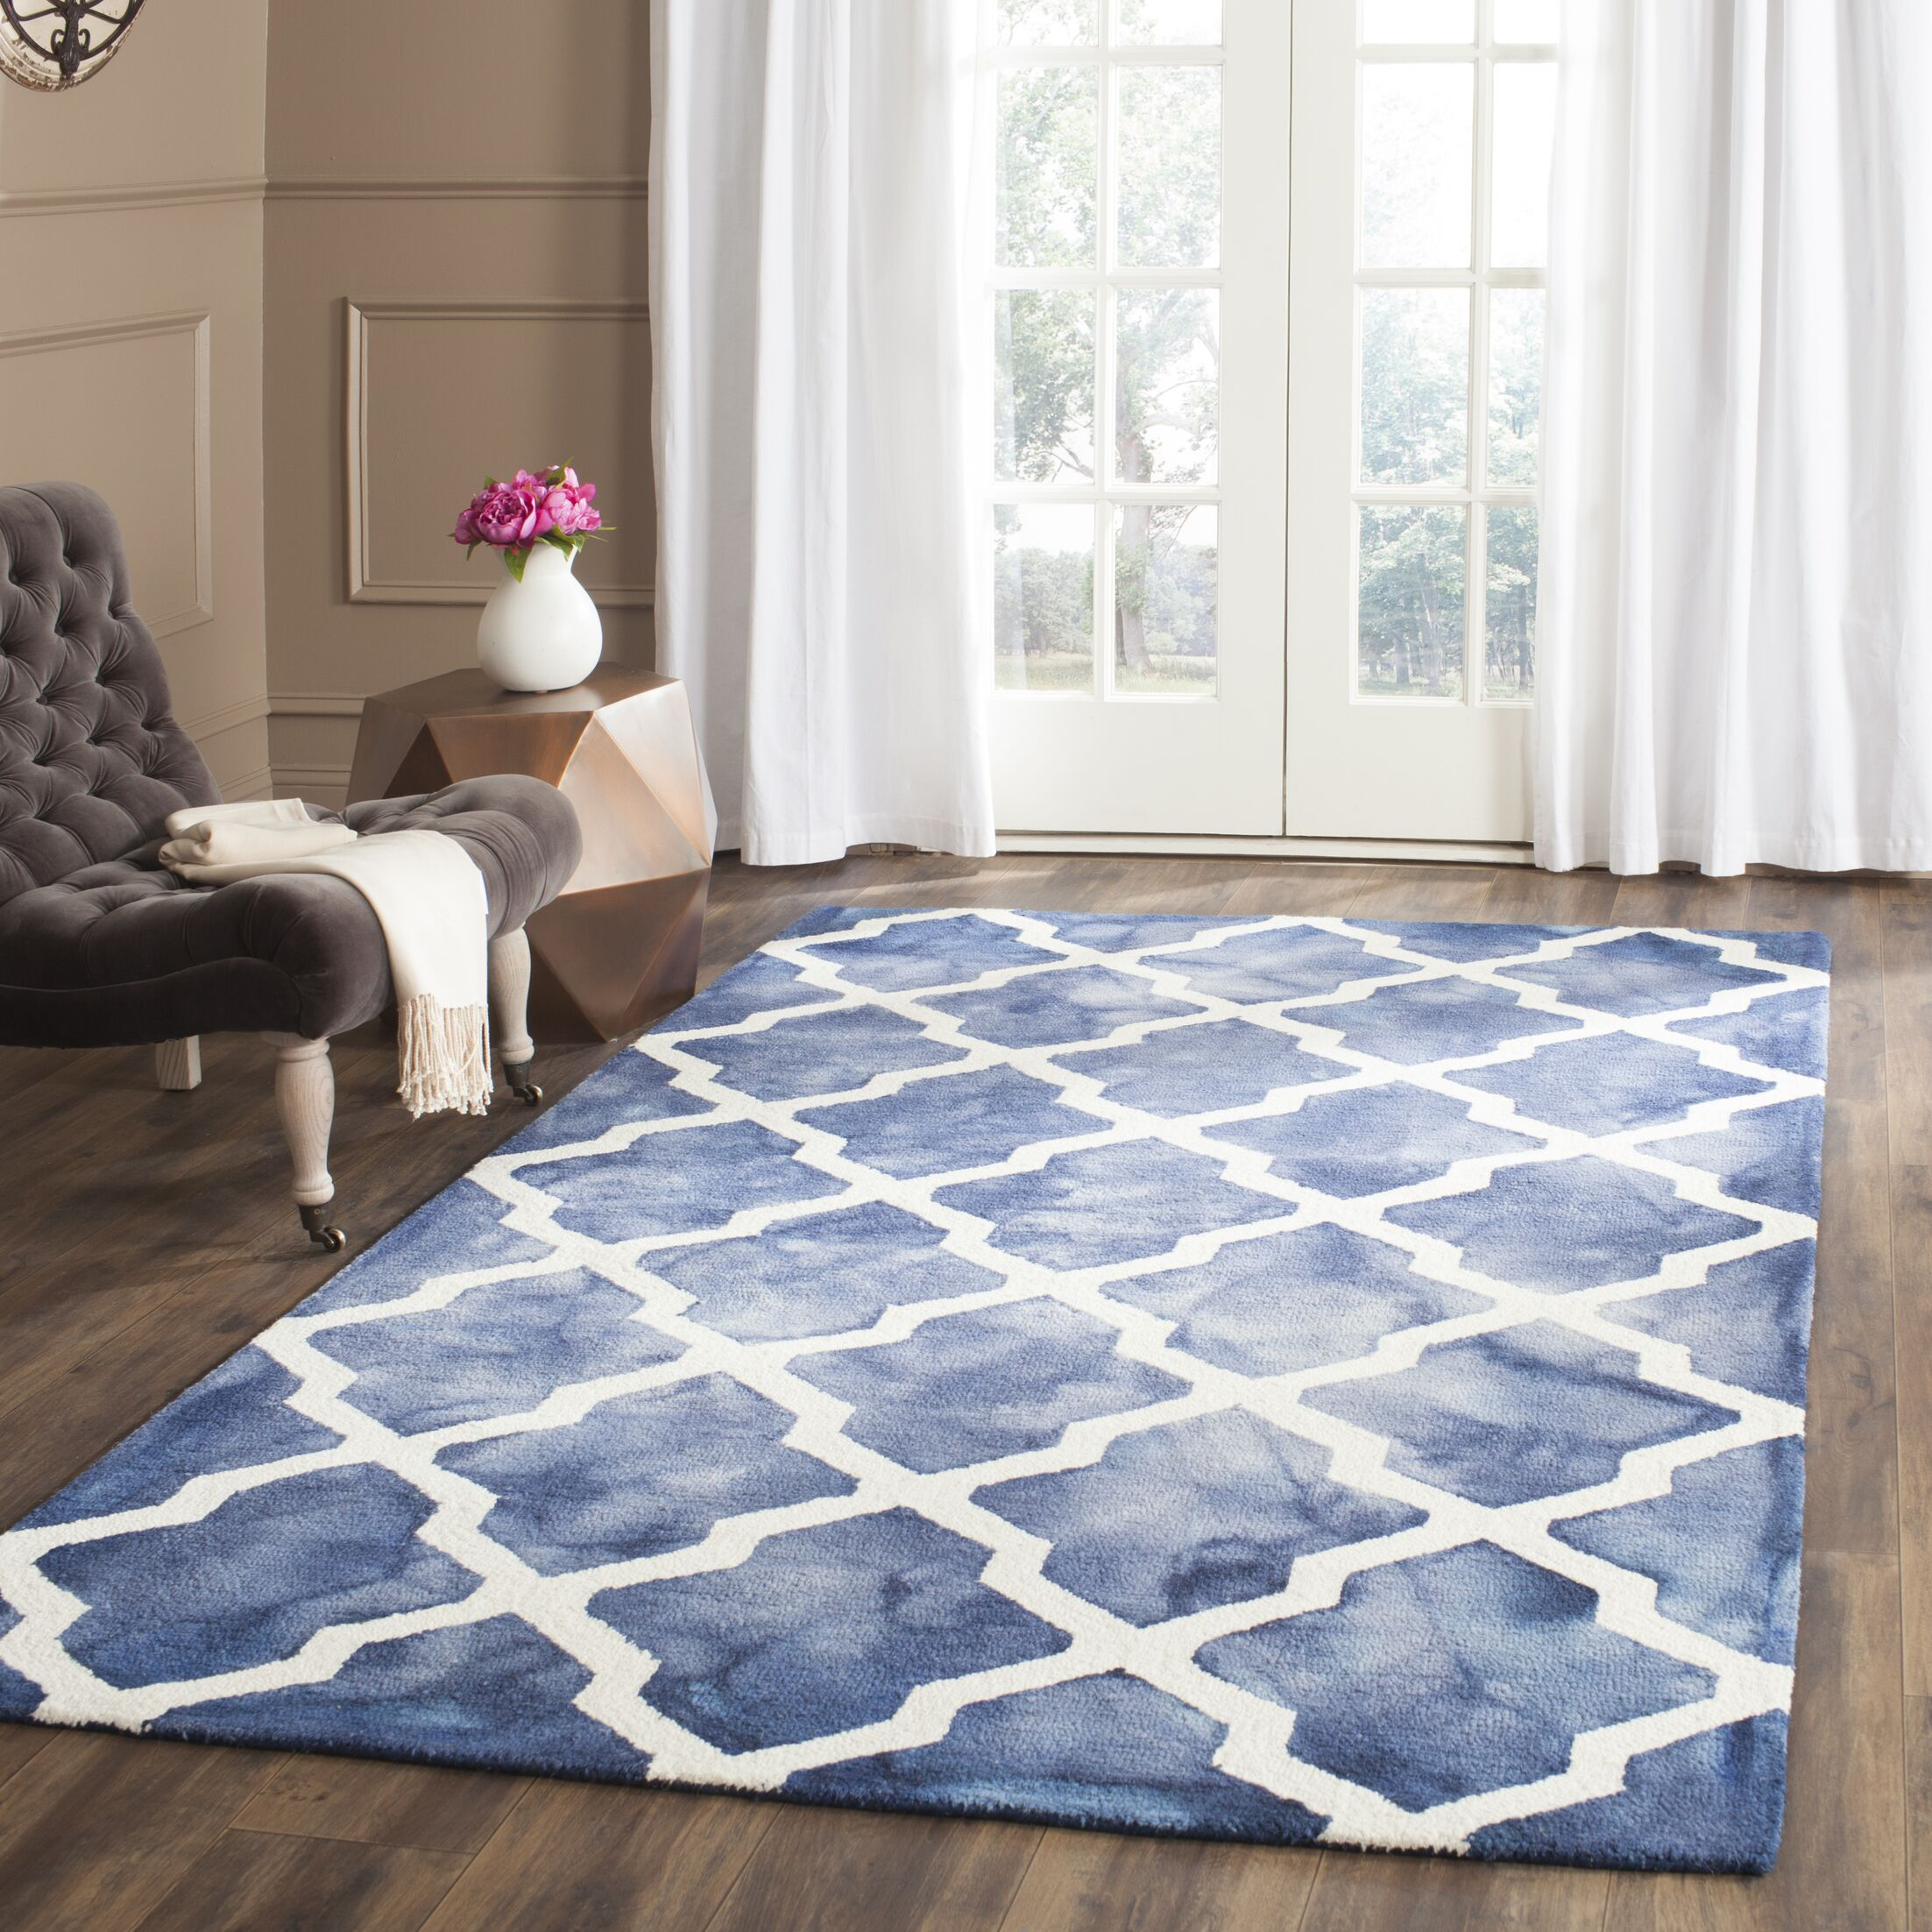 Hand-Tufted Navy/Ivory Area Rug Rug Size: Rectangle 3' x 5'